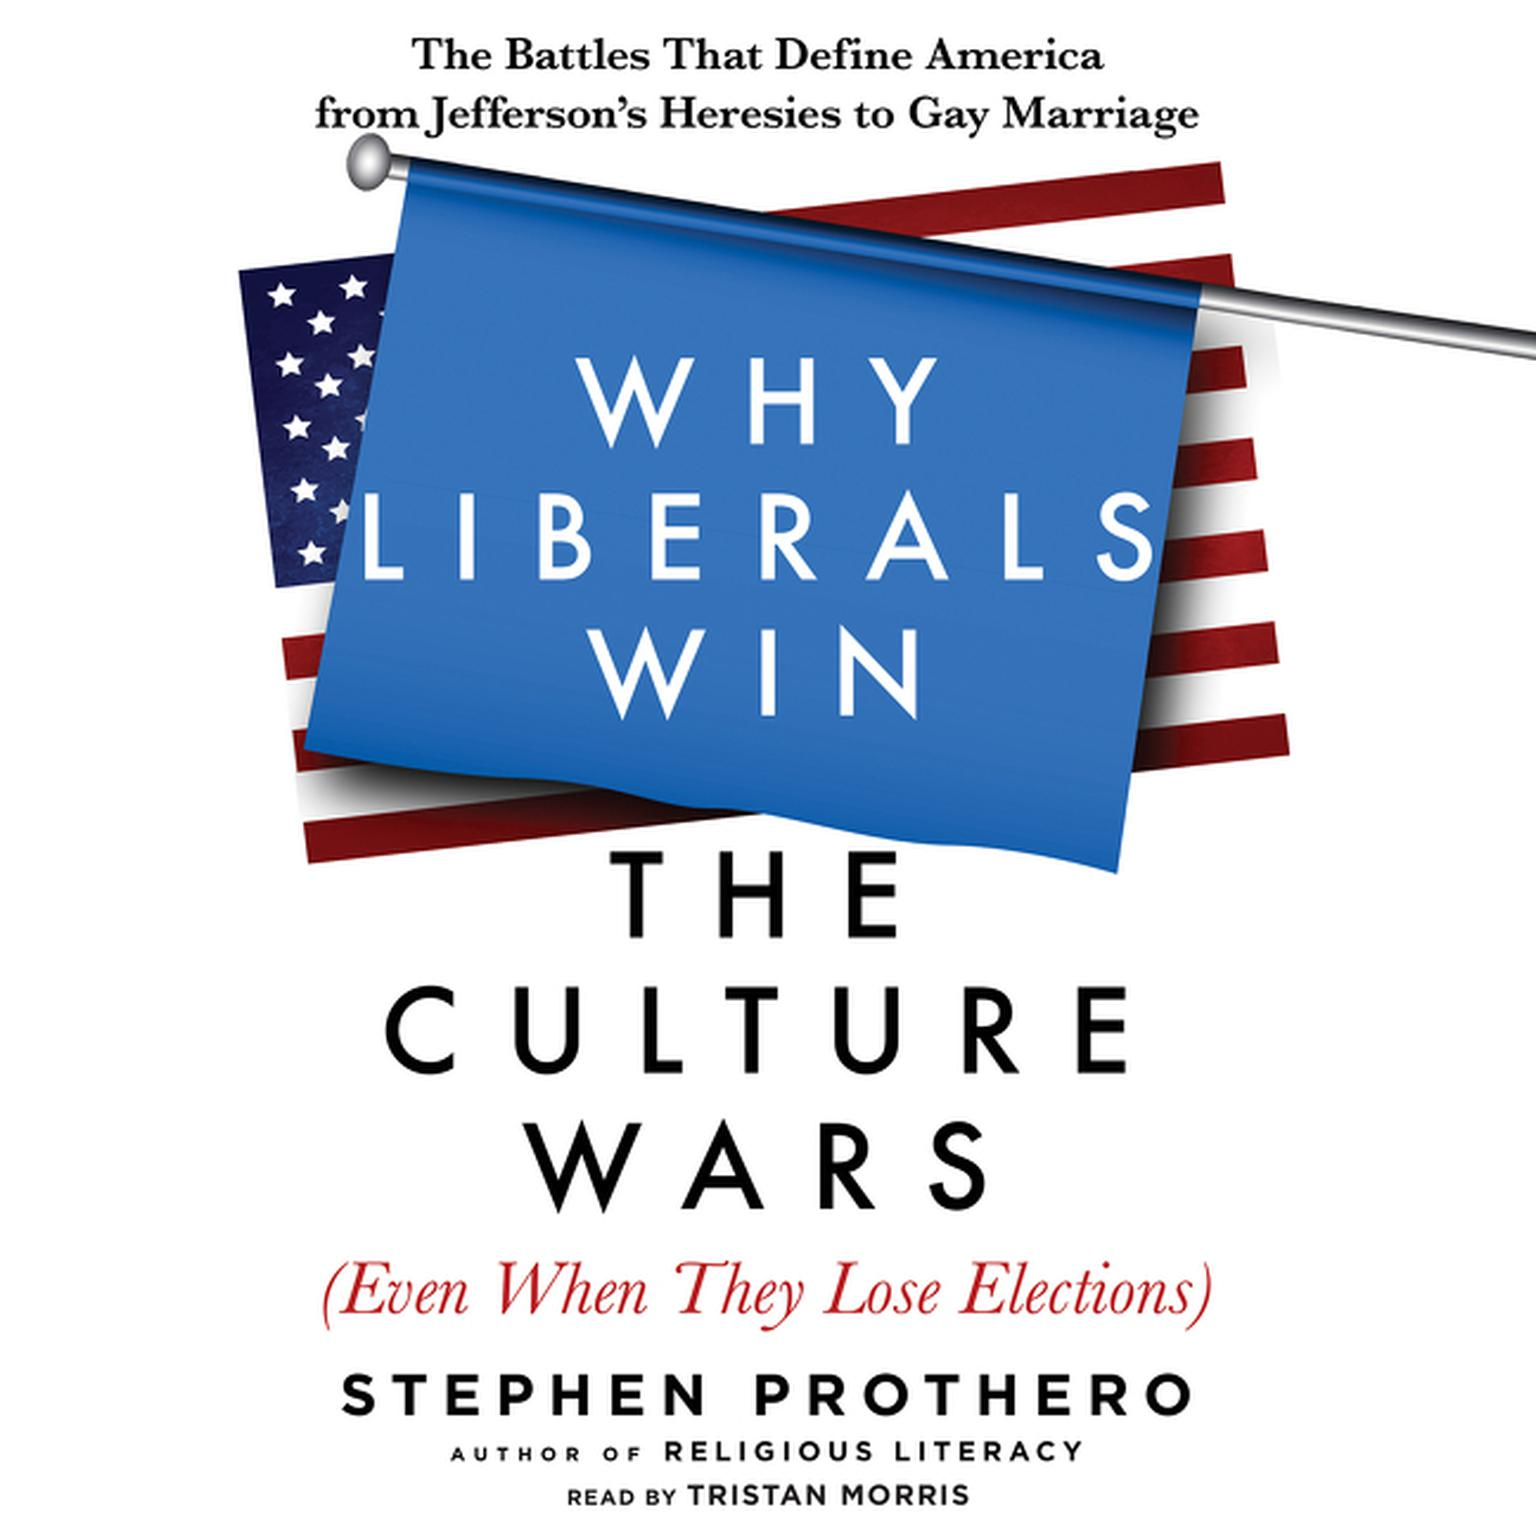 Printable Why Liberals Win the Culture Wars (Even When They Lose Elections): The Battles That Define America from Jefferson's Heresies to Gay Marriage Audiobook Cover Art